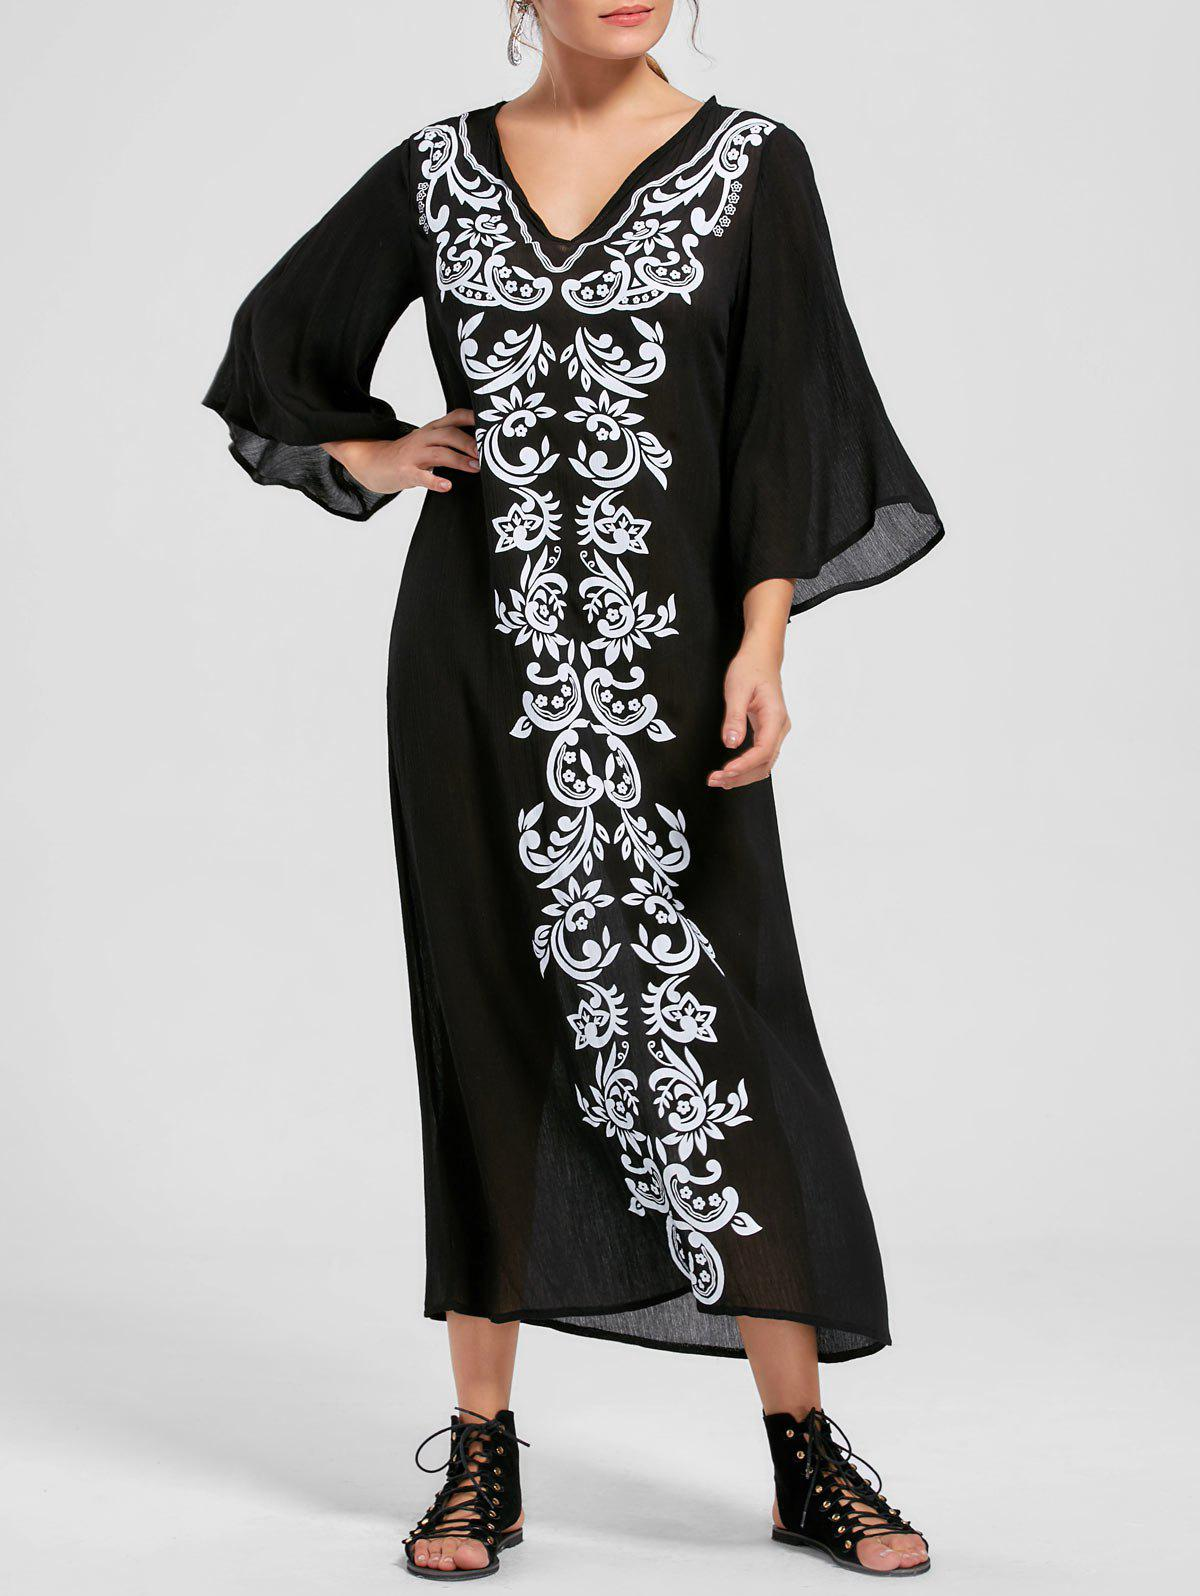 Bandana Floral Flare Sleeve Dress - Noir M